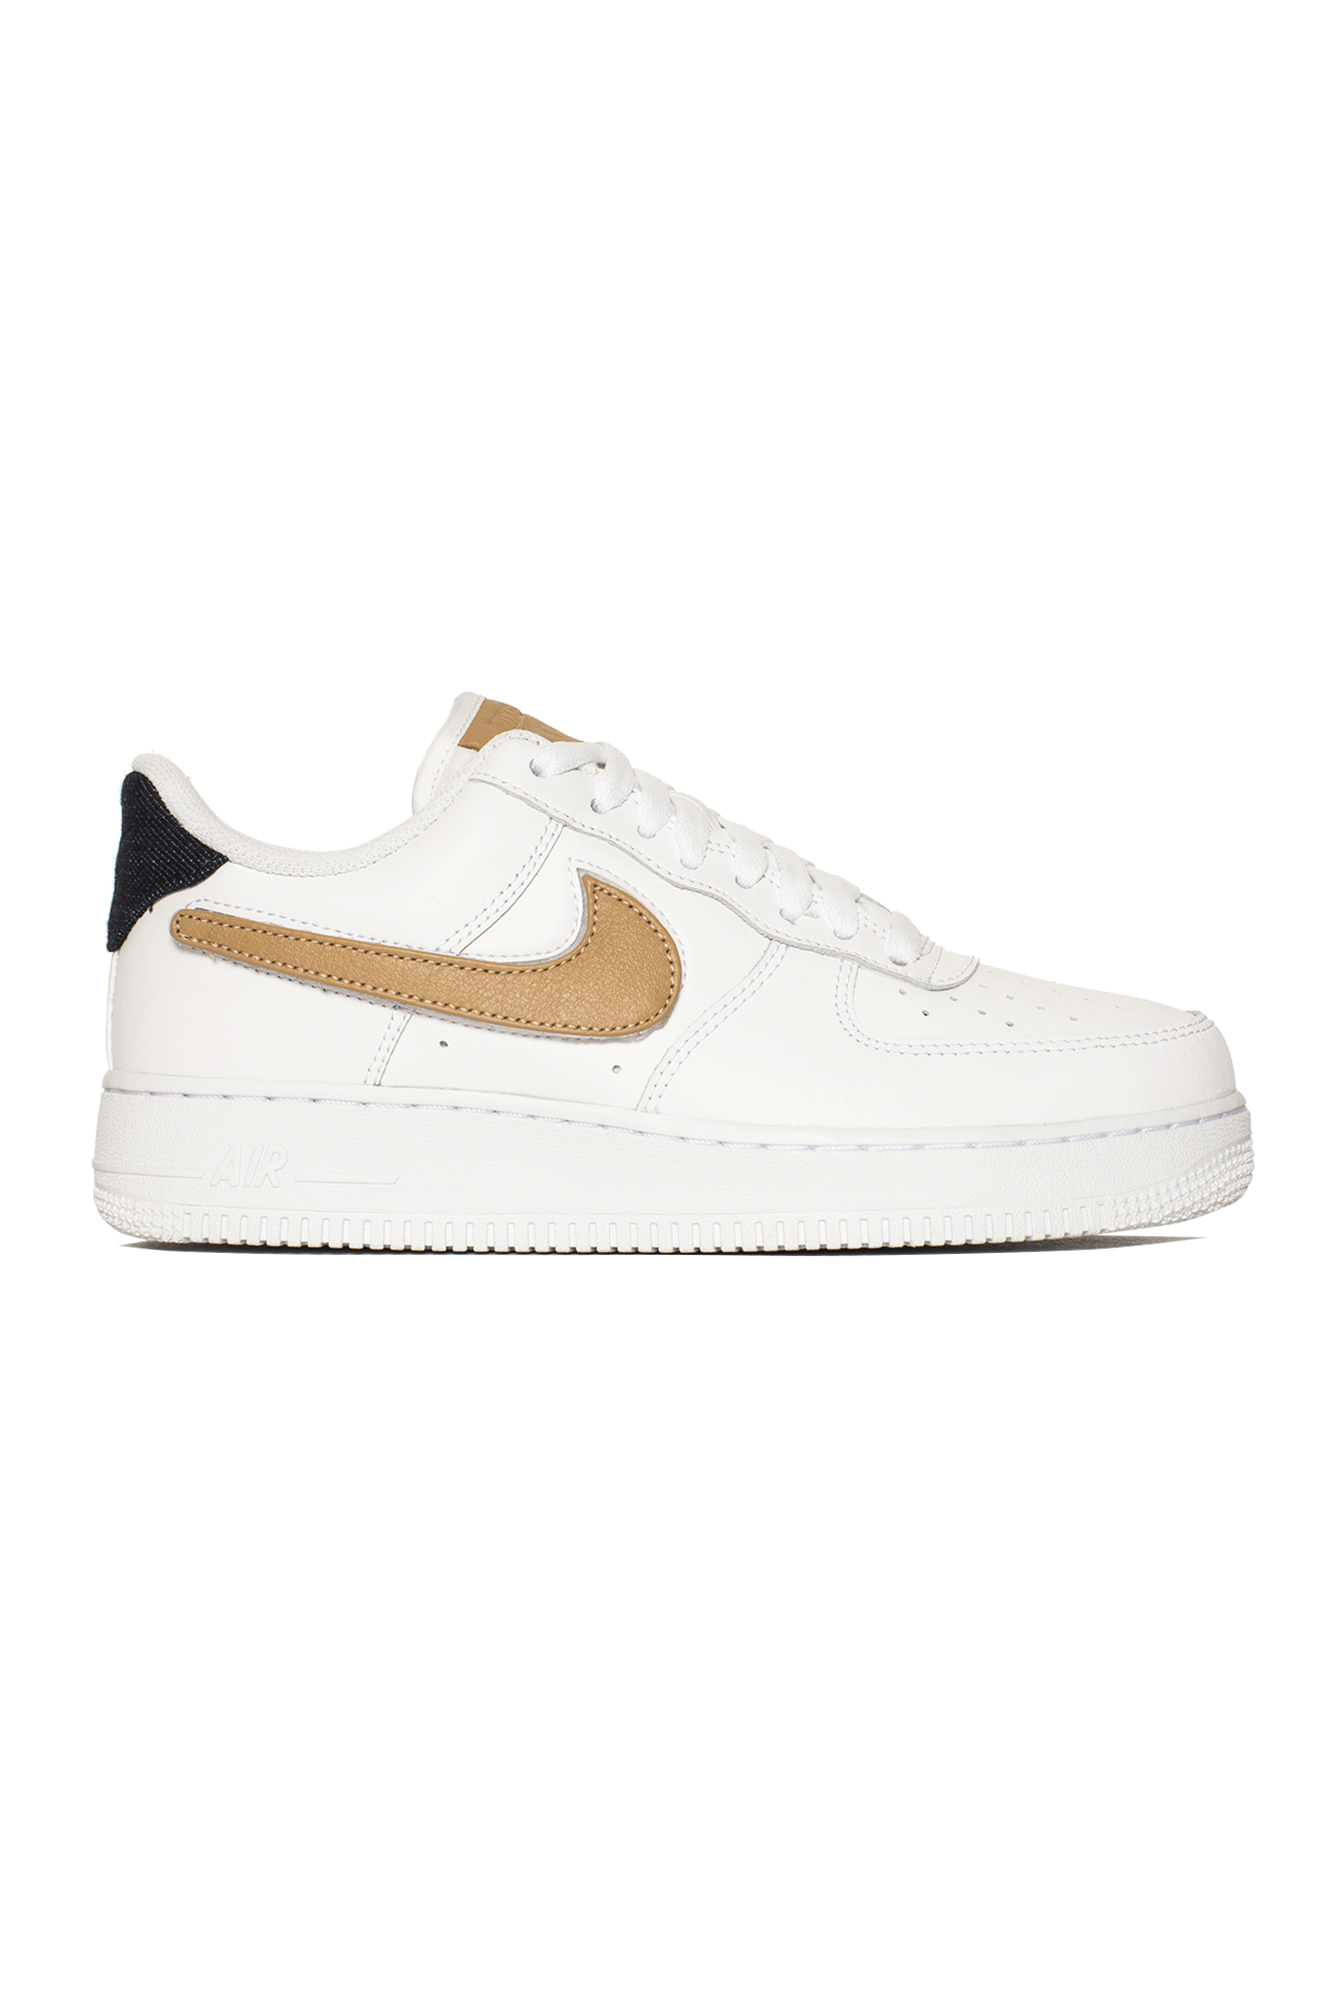 Nike Sneakers Wmns Air Force 1 '07 LX White CZ8101 #000#100